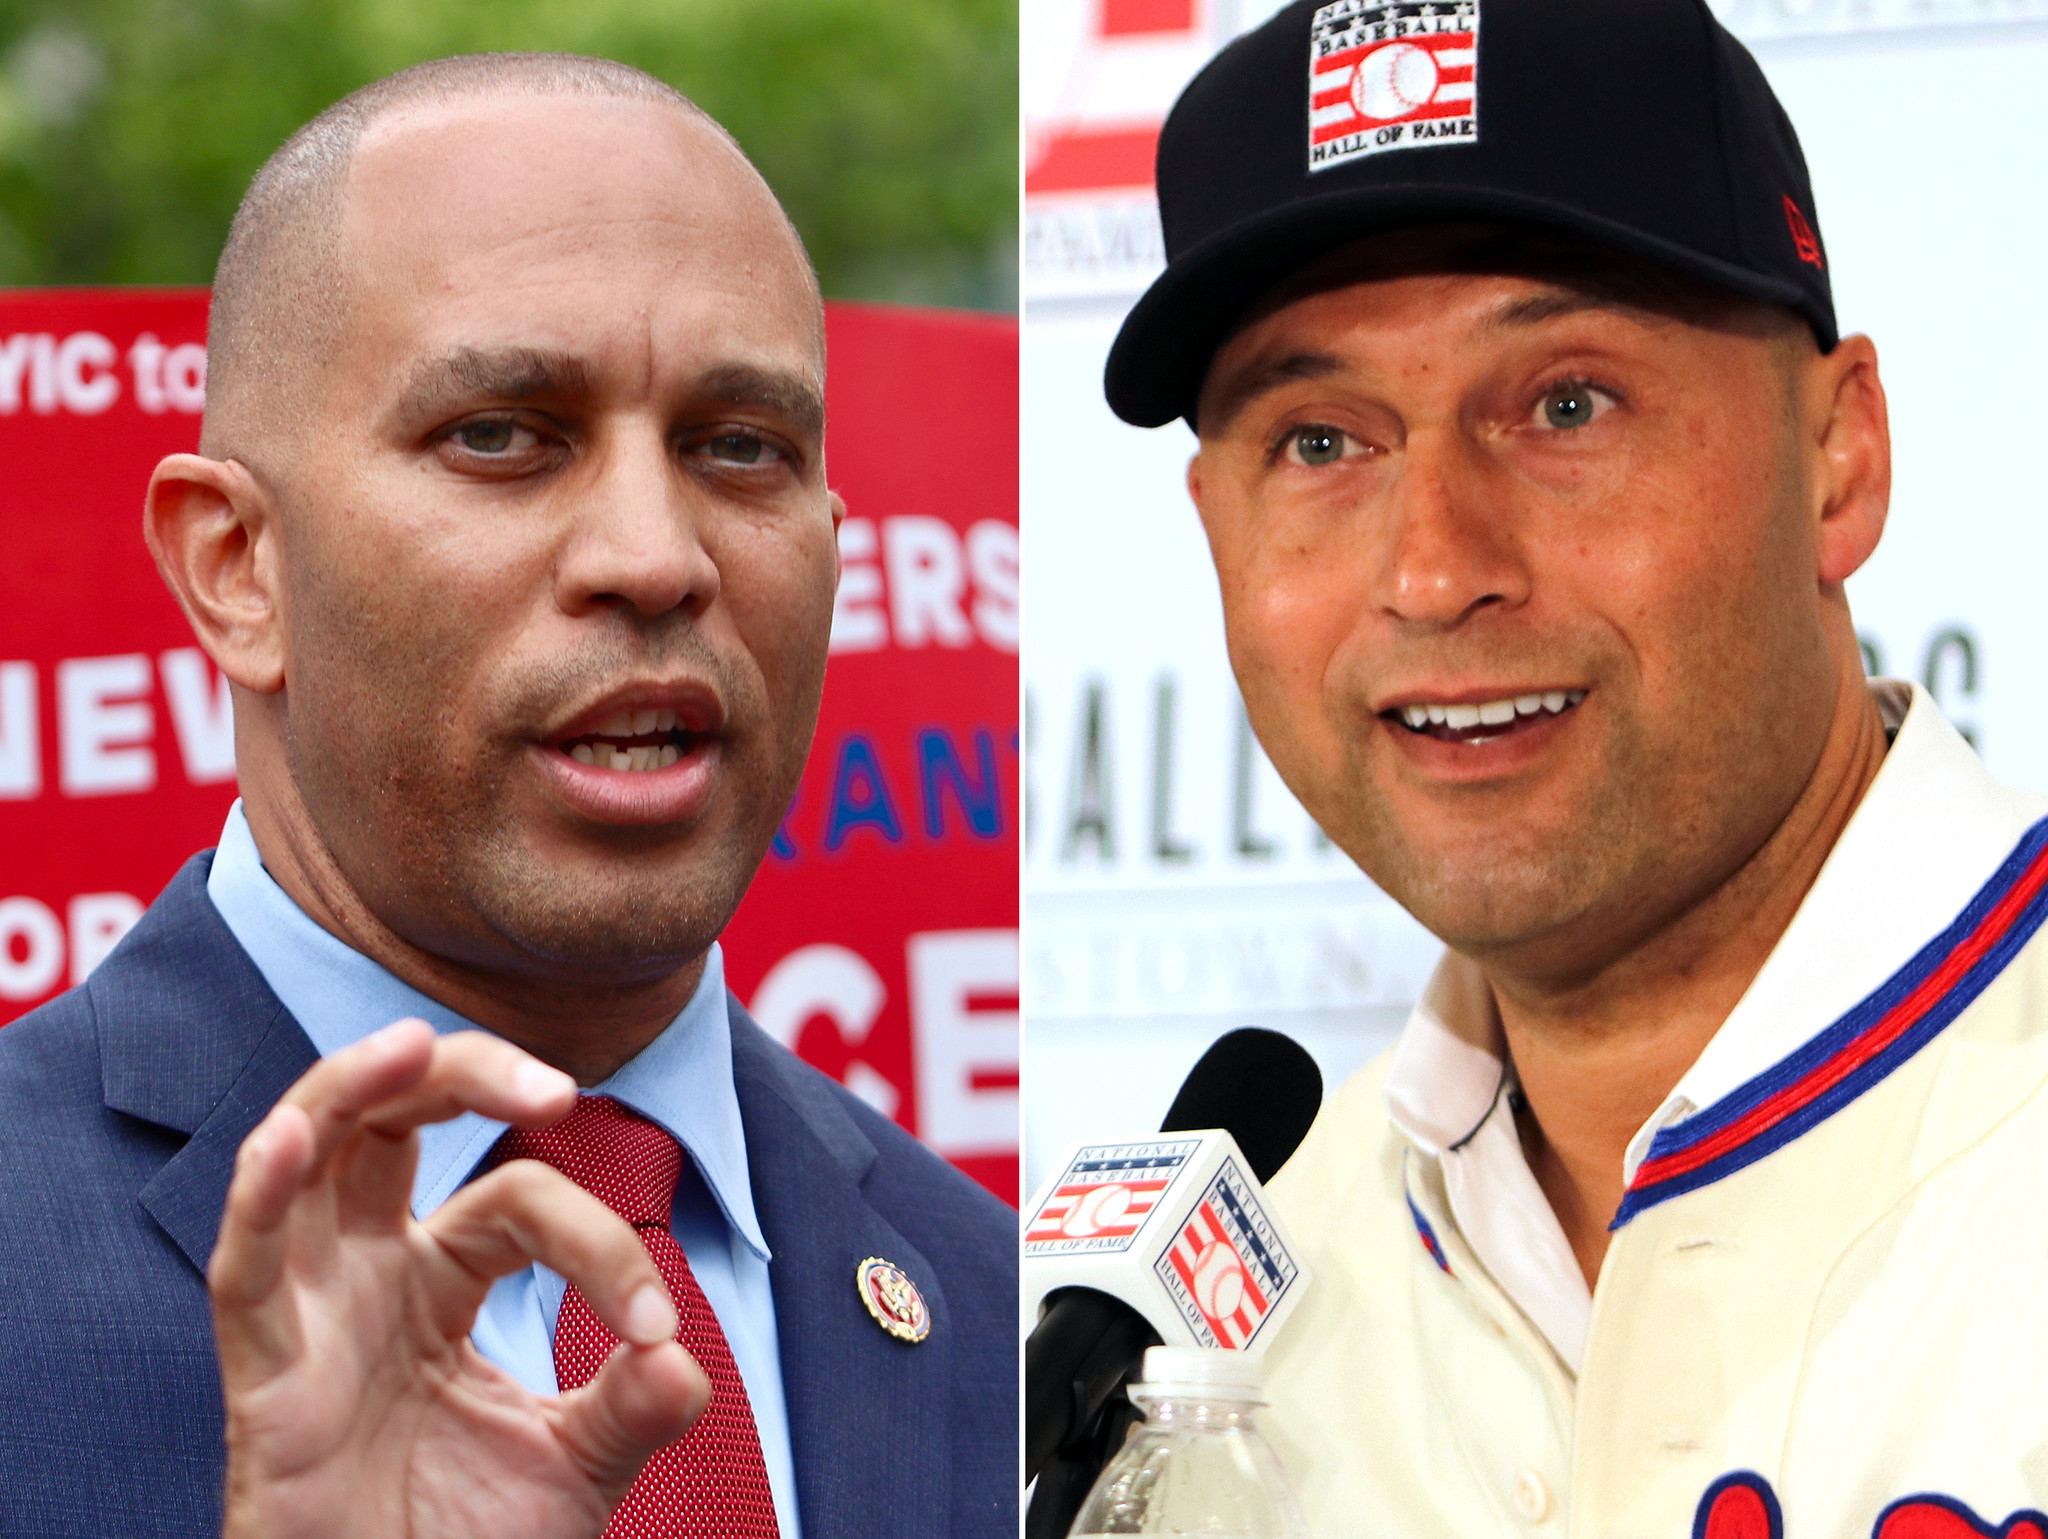 Impeachment manager Hakeem Jeffries suggests real outrage is vote against putting Derek Jeter in Hall of Fame